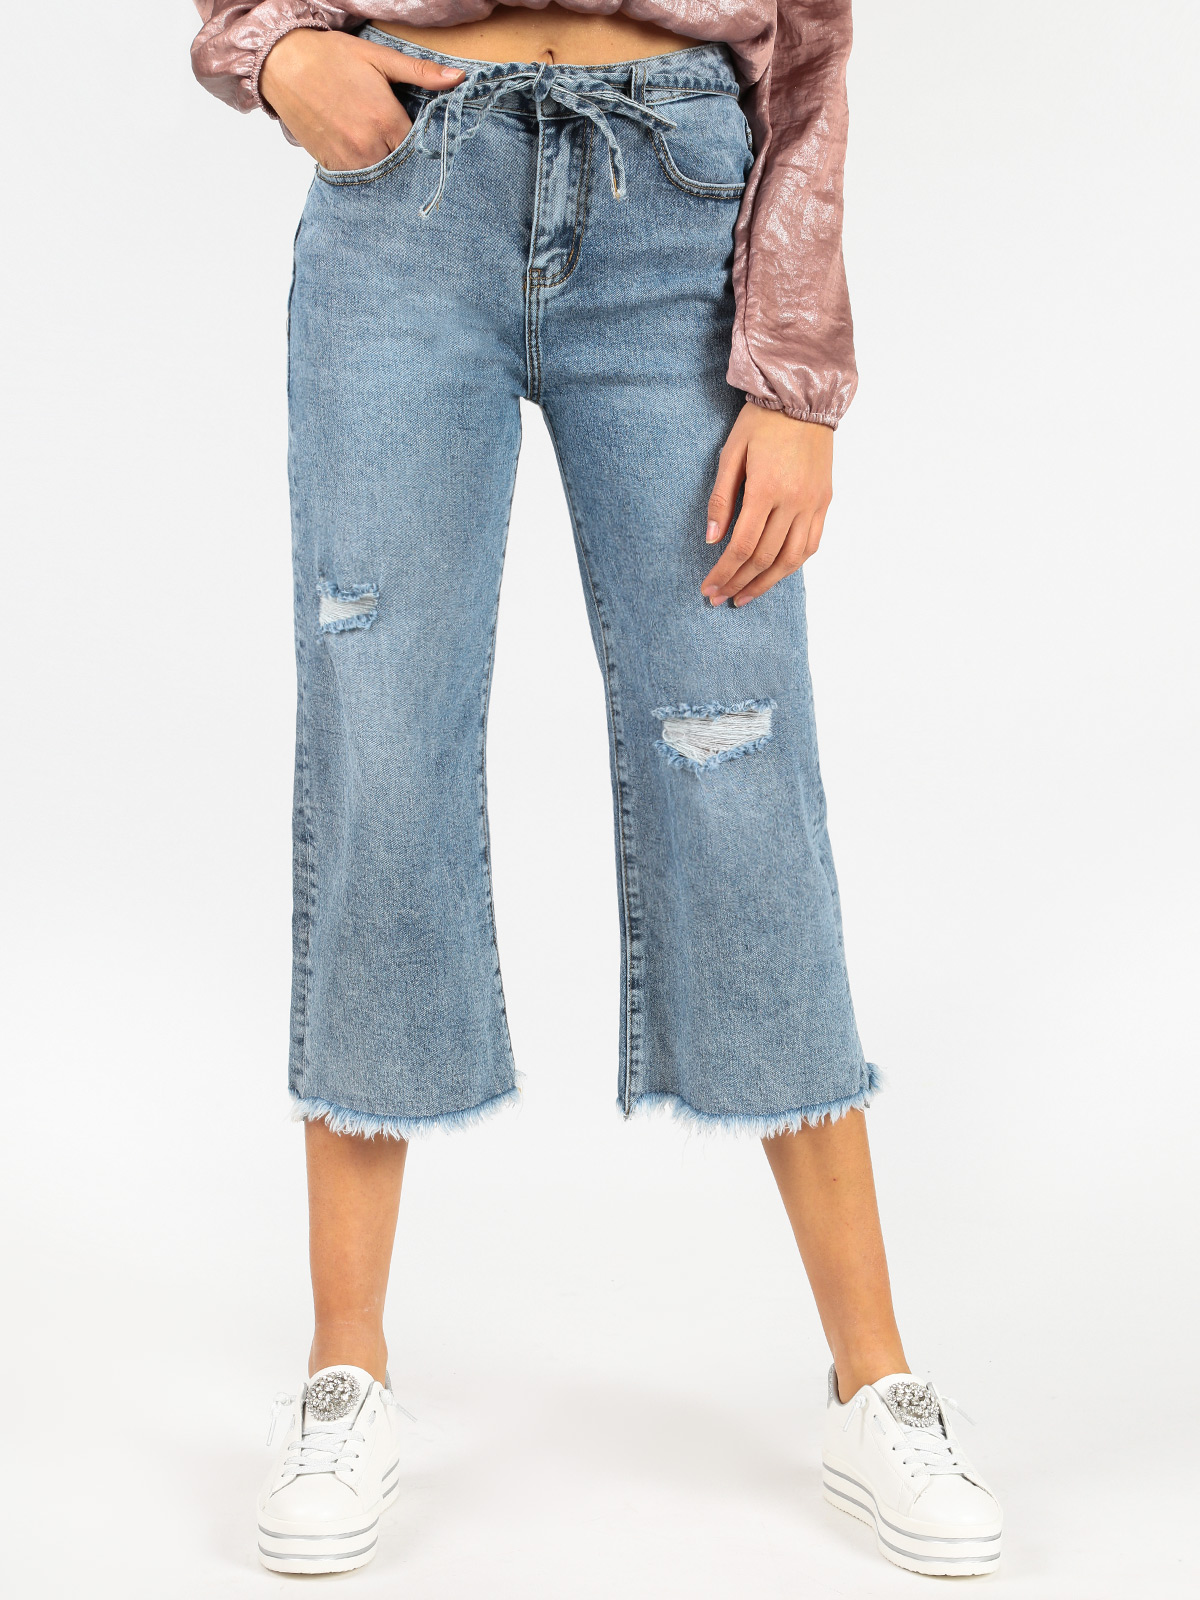 LITTLE BUTTERFLY Boyfriend Jeans Frayed Under